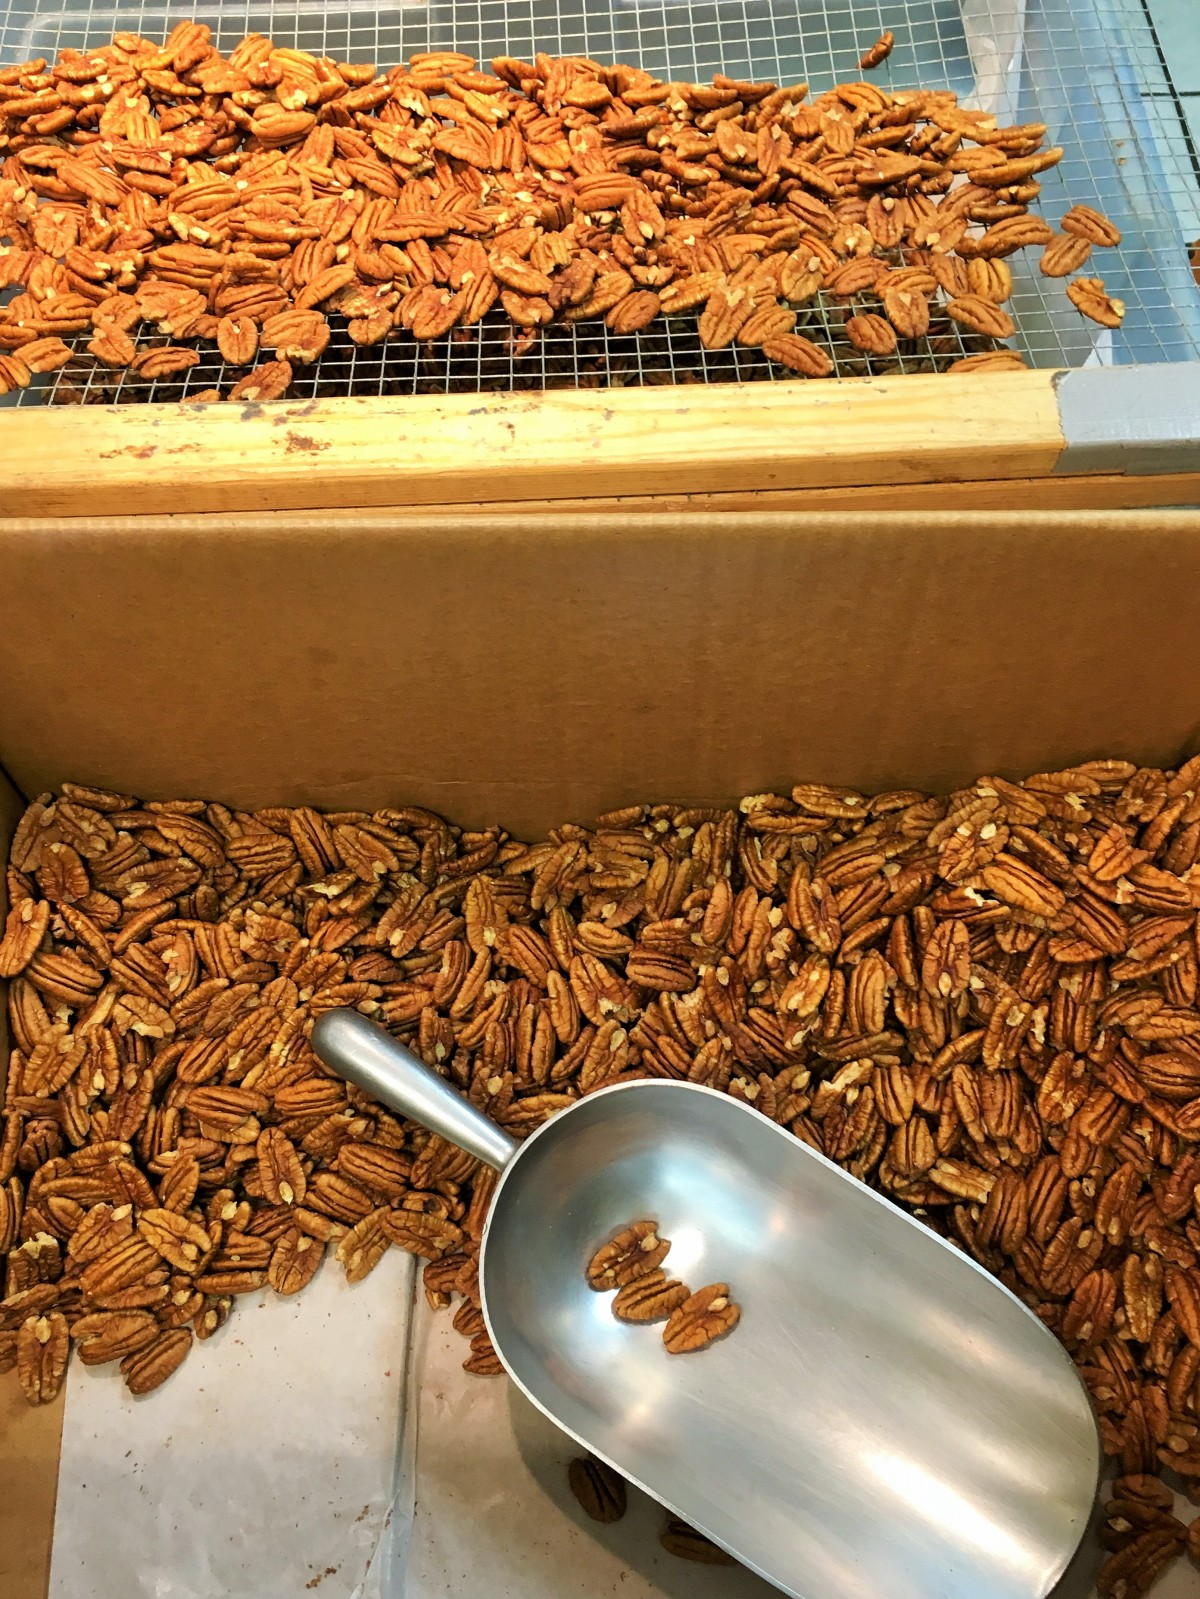 cleaned-pecan-halves-on-the-screen-freshly-shipped-pecan-halves-in-the-box